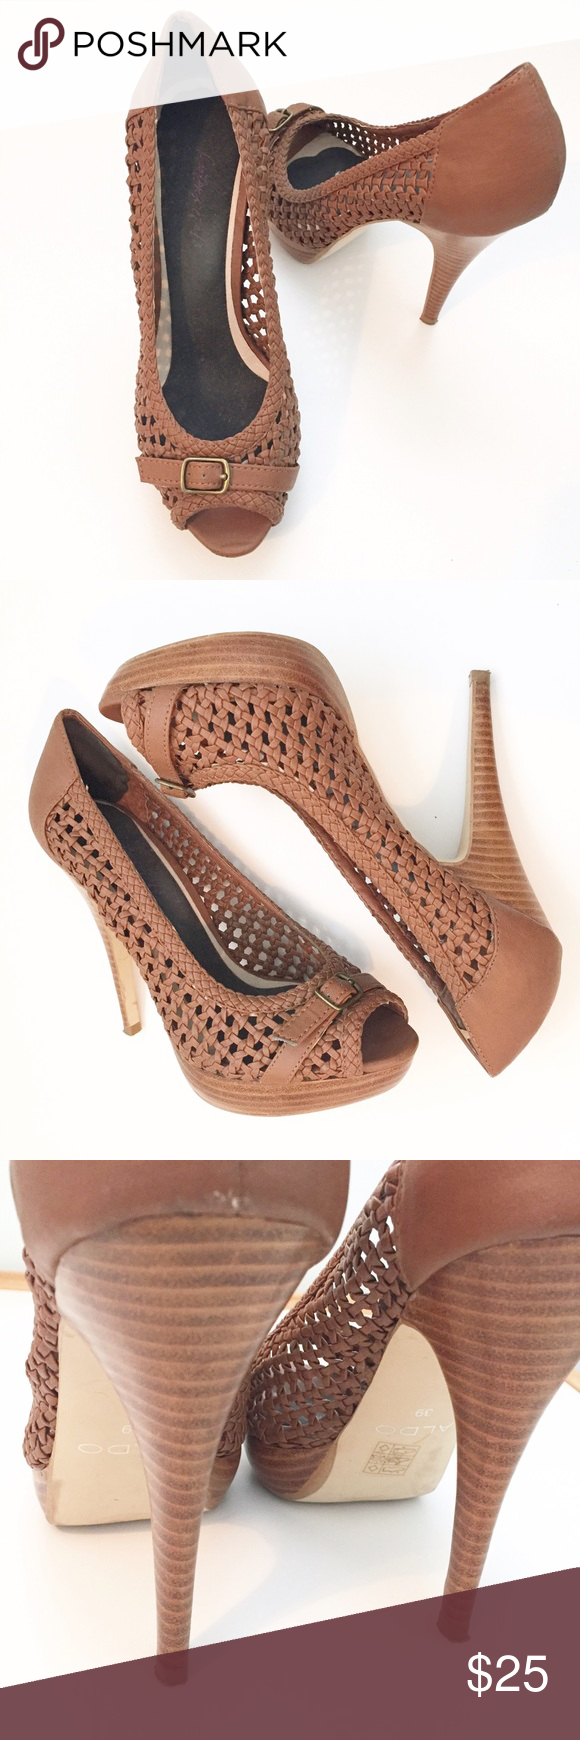 Aldo Peep Toe Basket weave platform sandals 39 Aldo Basketweave Brown Peep Toe Stiletto heel with small platform in front. Size 39. I put a cushion inside to make them more comfy. After pregnancy these no longer fit  great condition Aldo Shoes Heels